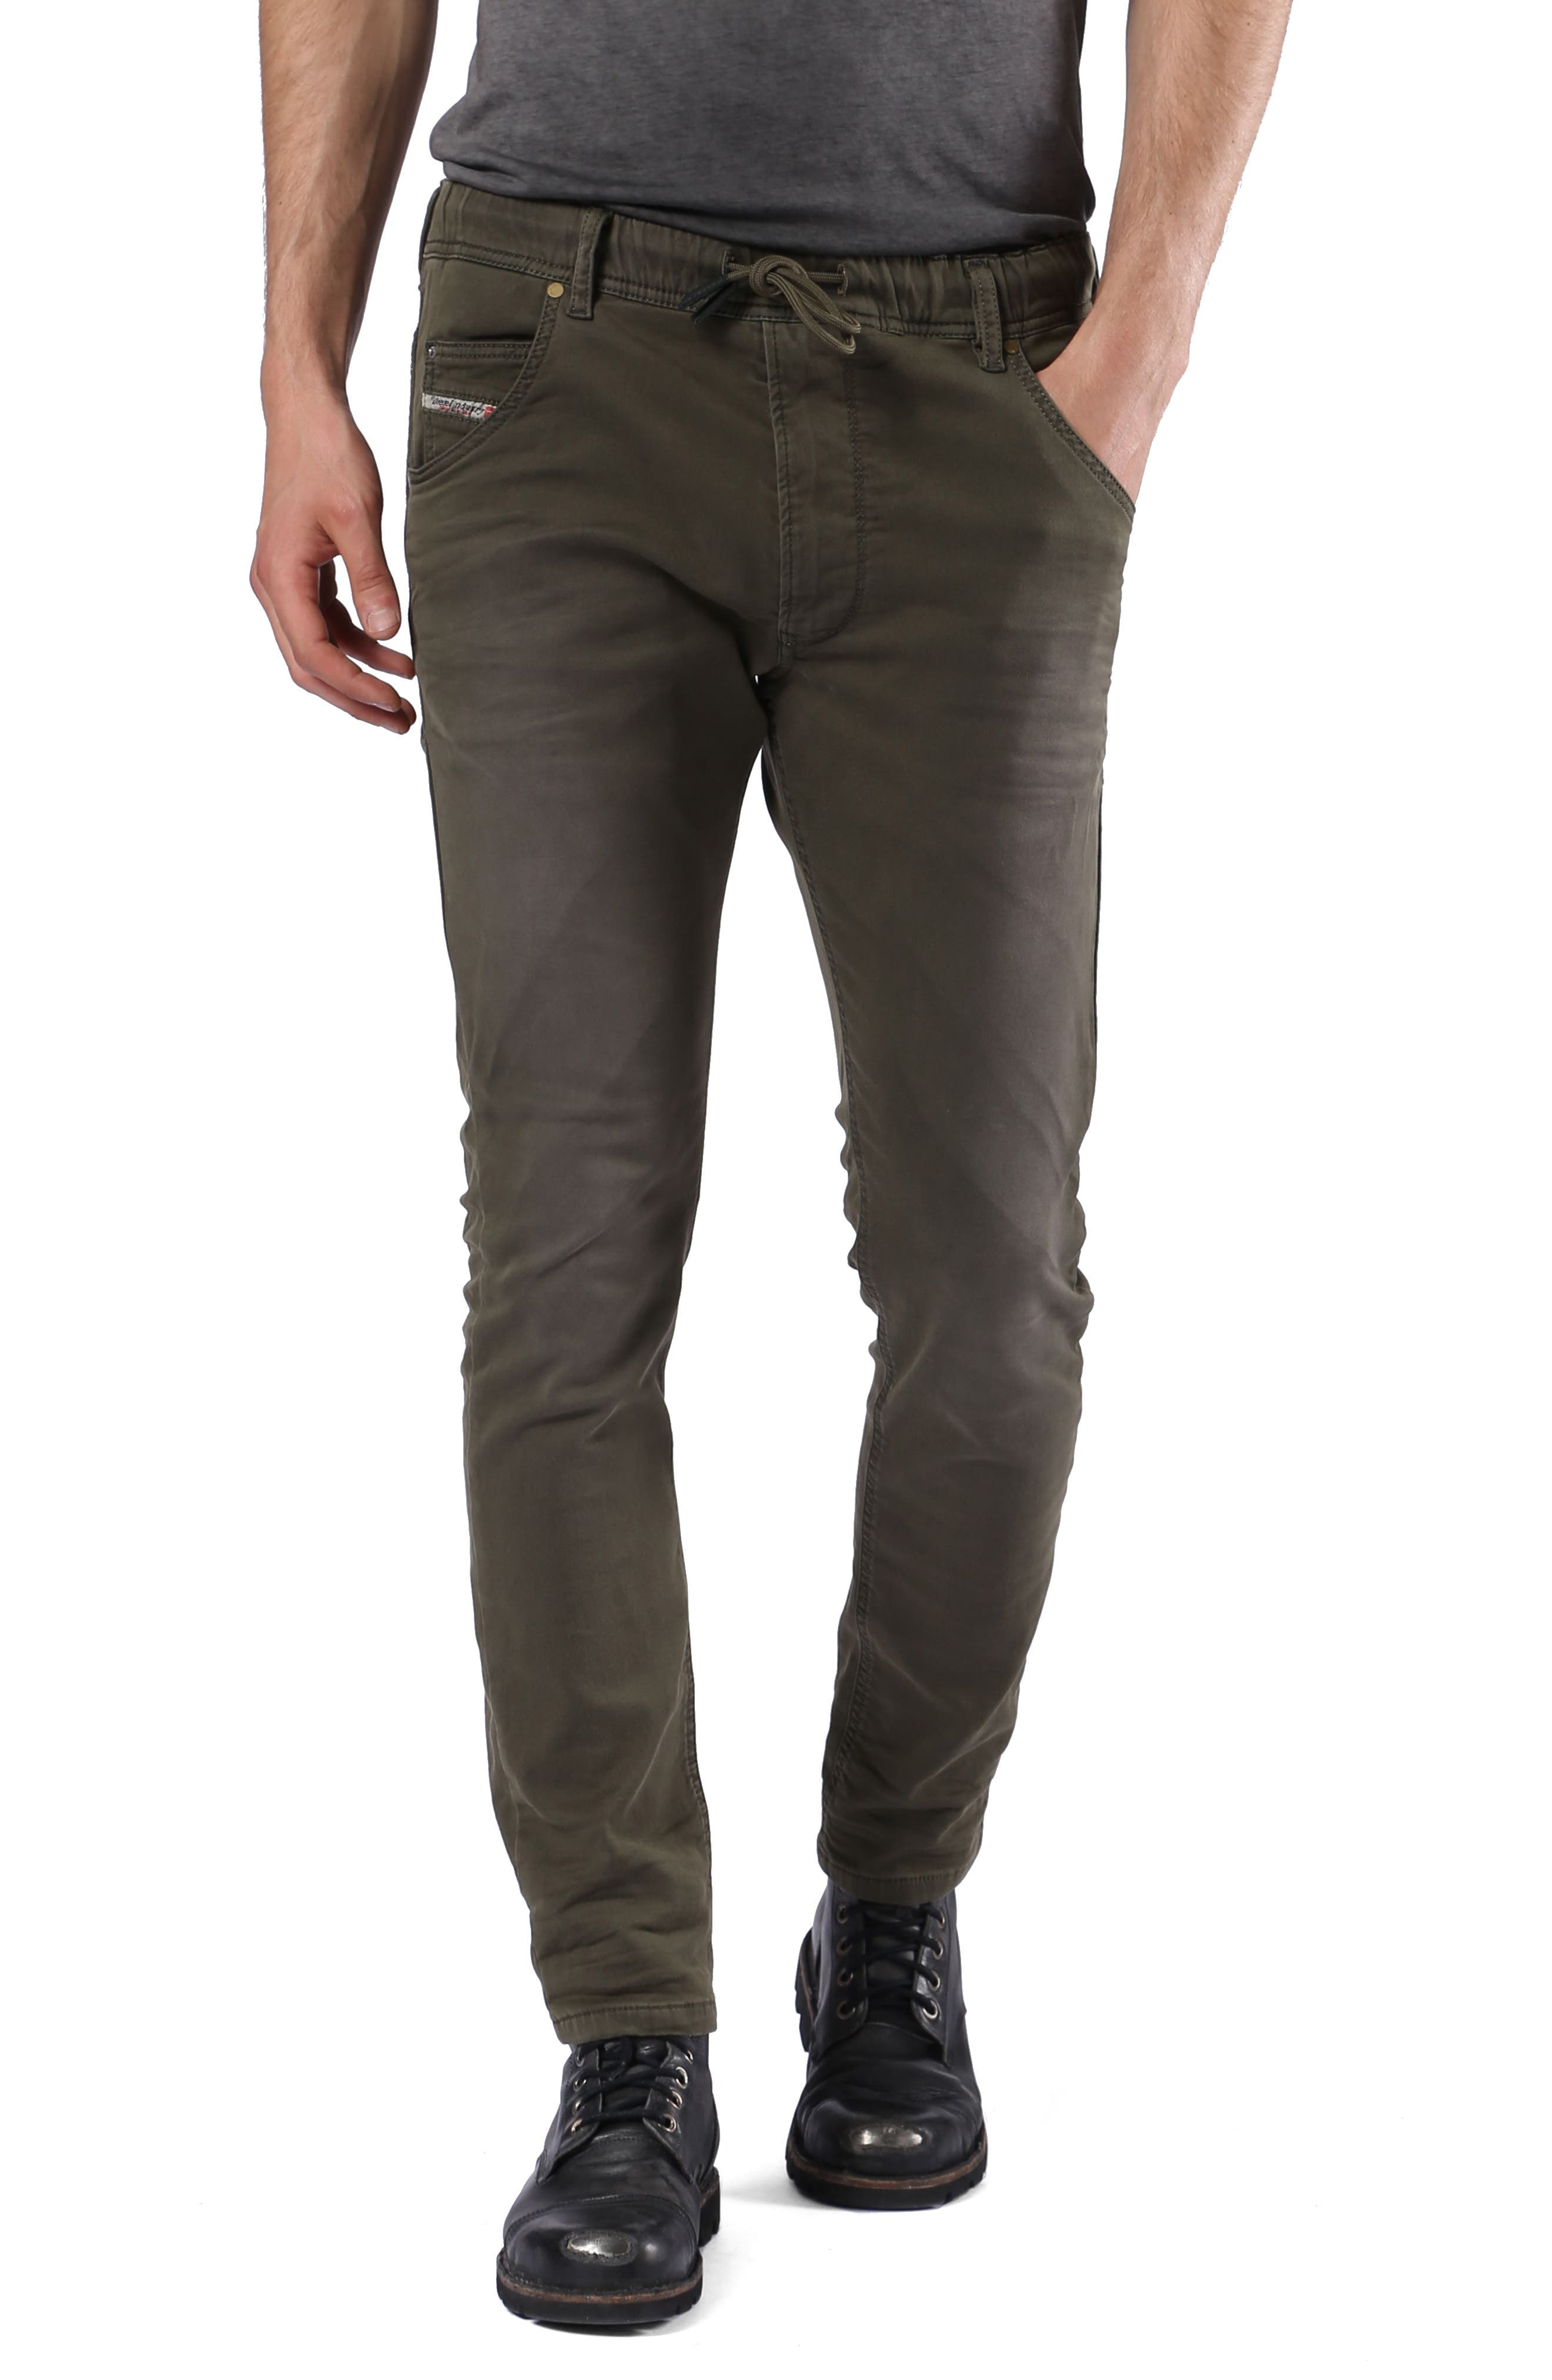 Krooley Slouchy Skinny Fit Jeans,                         Main,                         color, 0670M